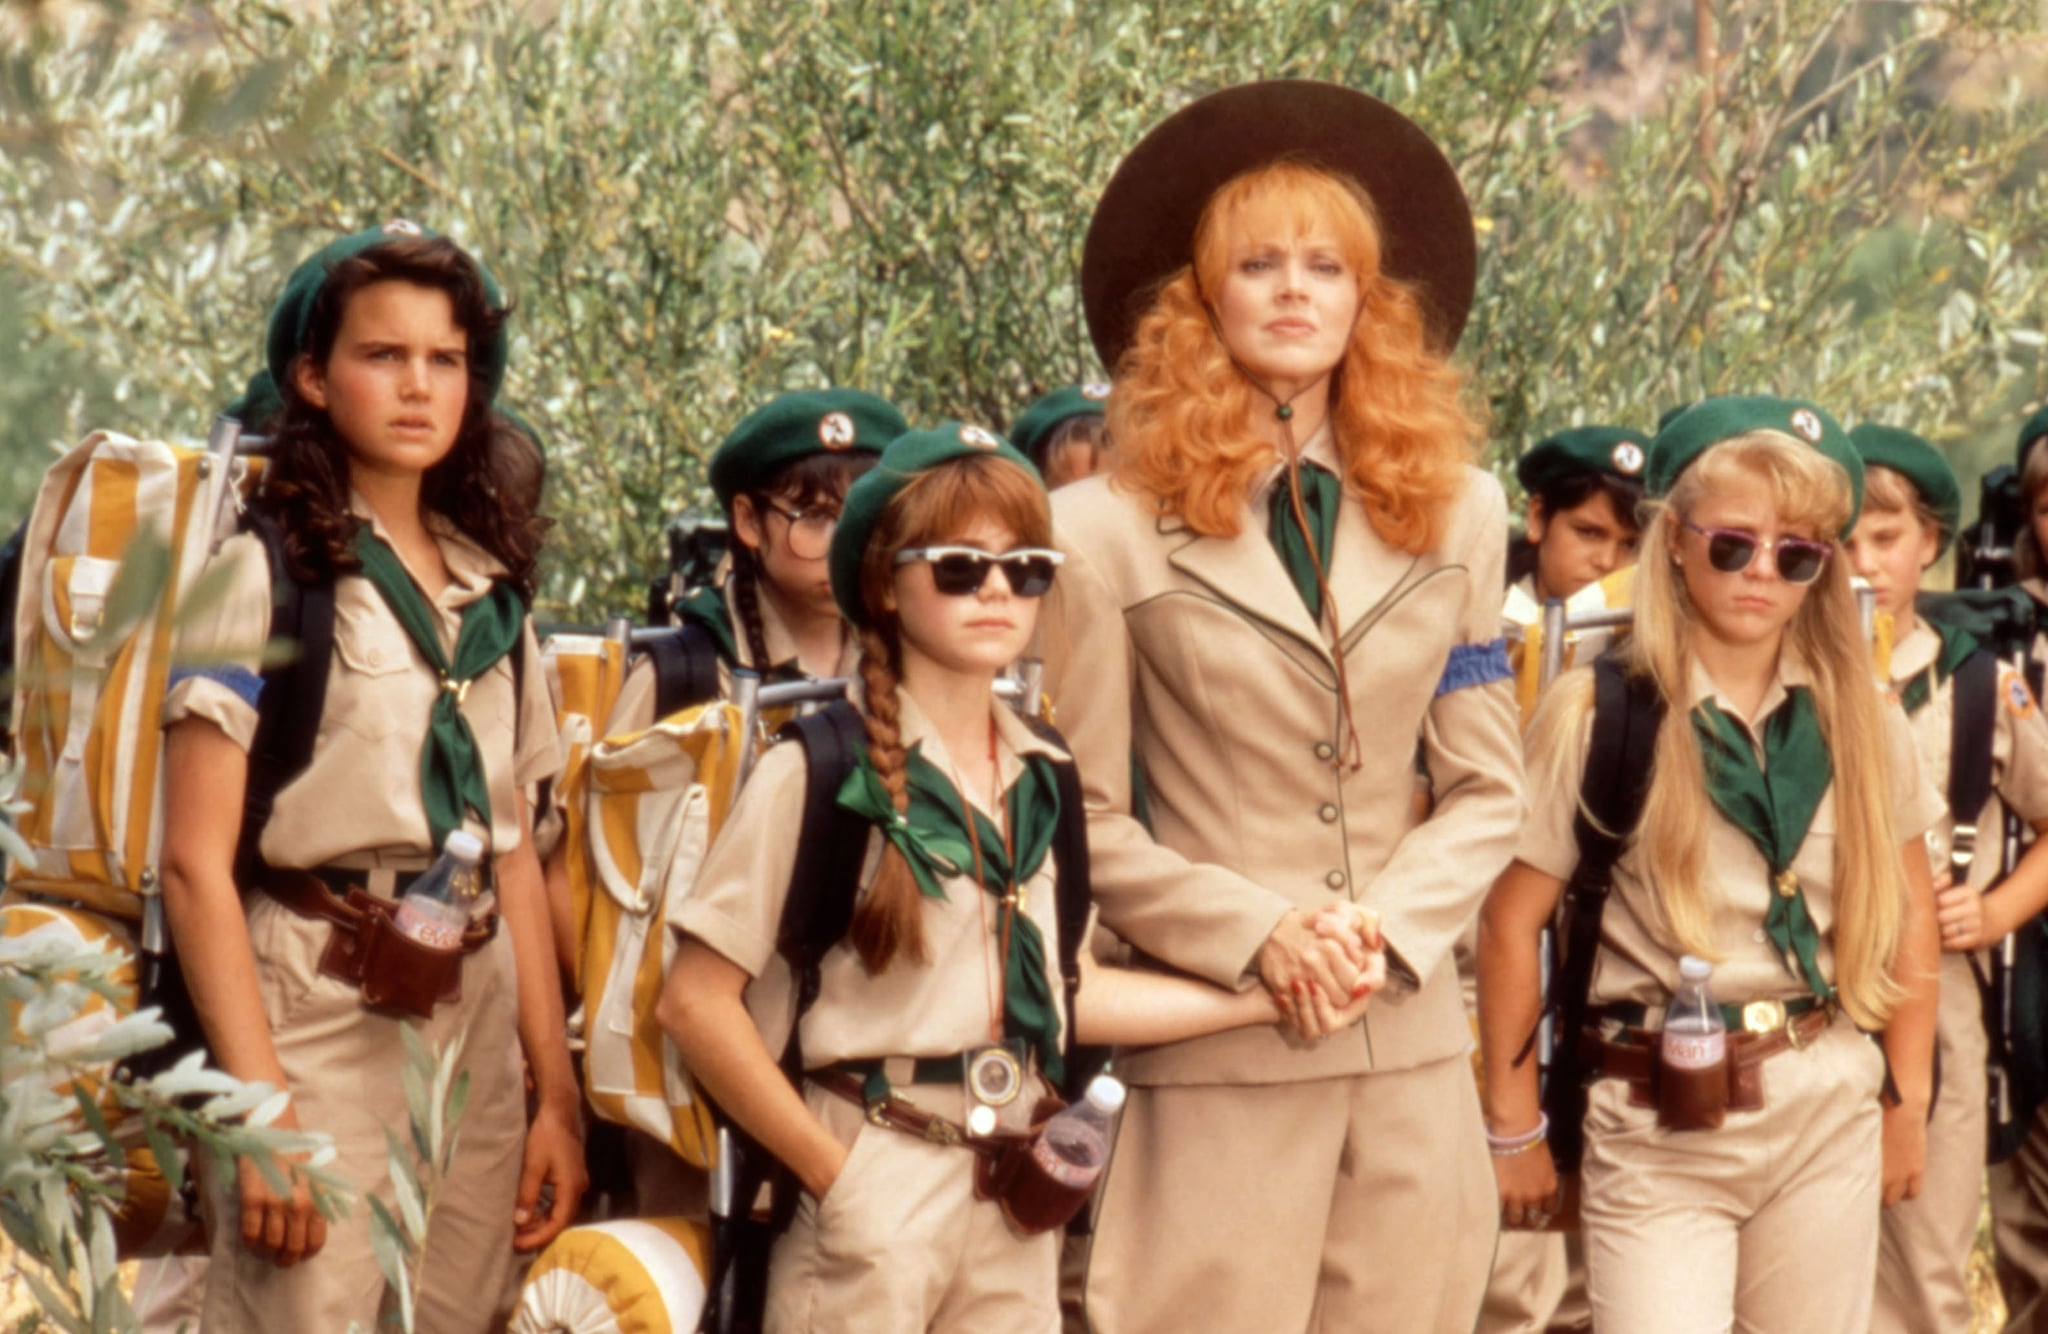 TROOP BEVERLY HILLS, Carla Gugino, Jenny Lewis, Shelley Long, 1989, (c)Columbia Pictures/courtesy Everett Collection